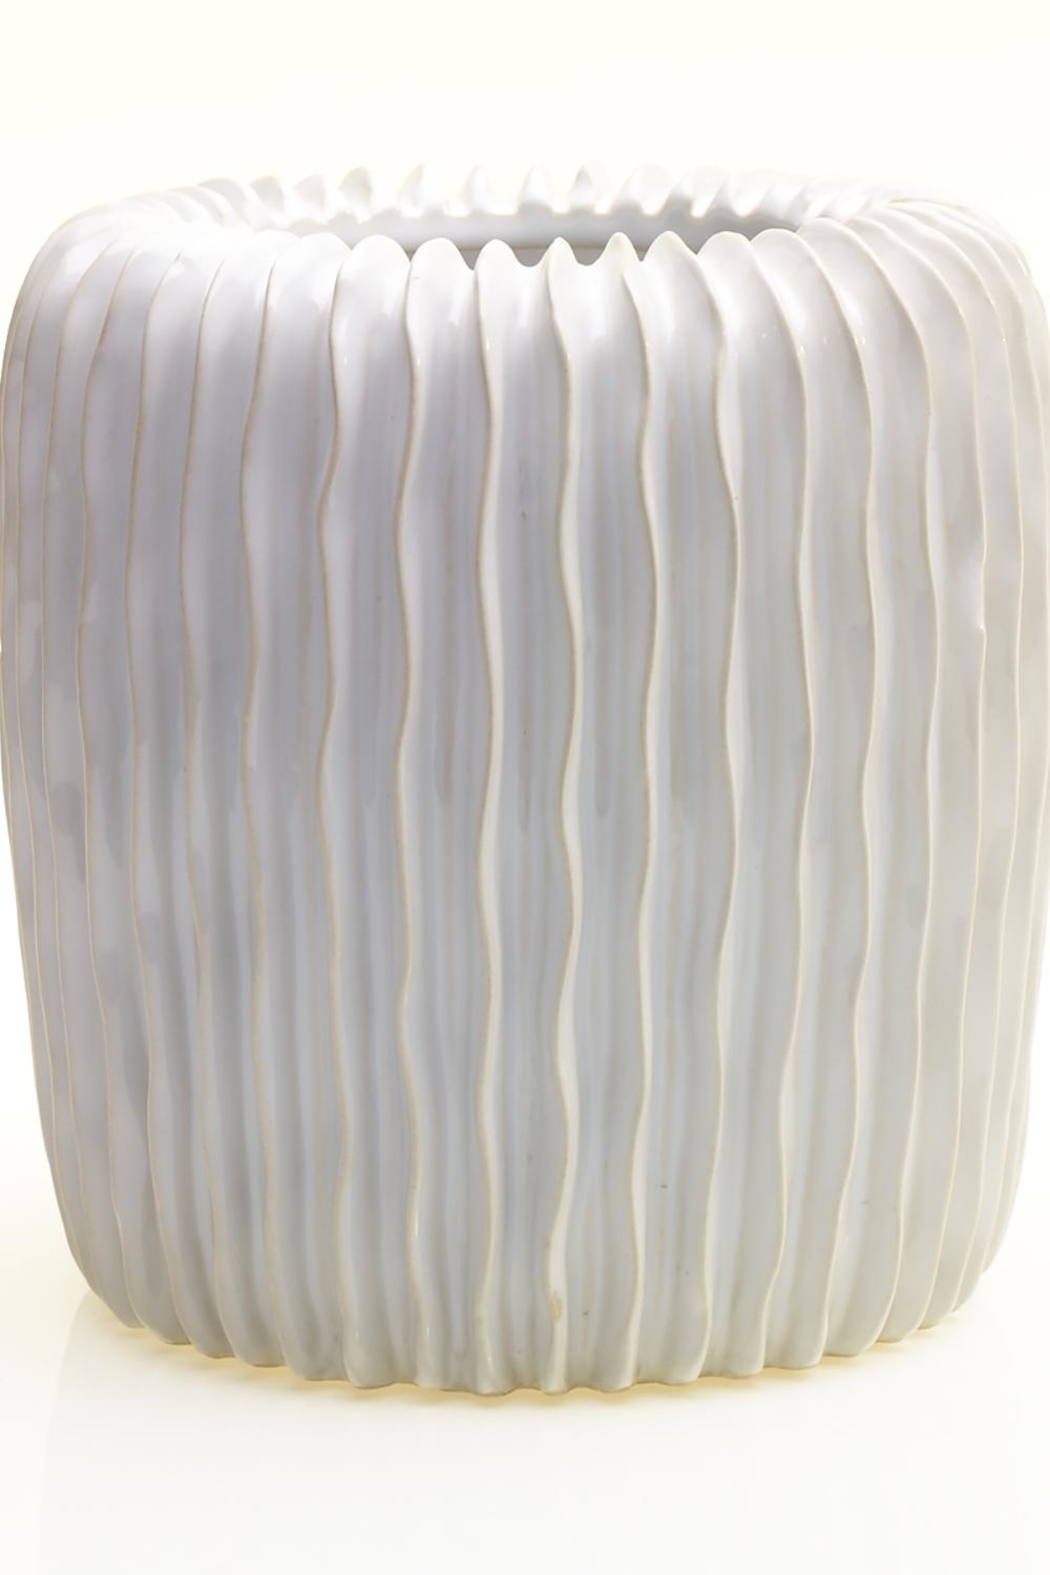 Accent Decor White Haven Vase - Main Image